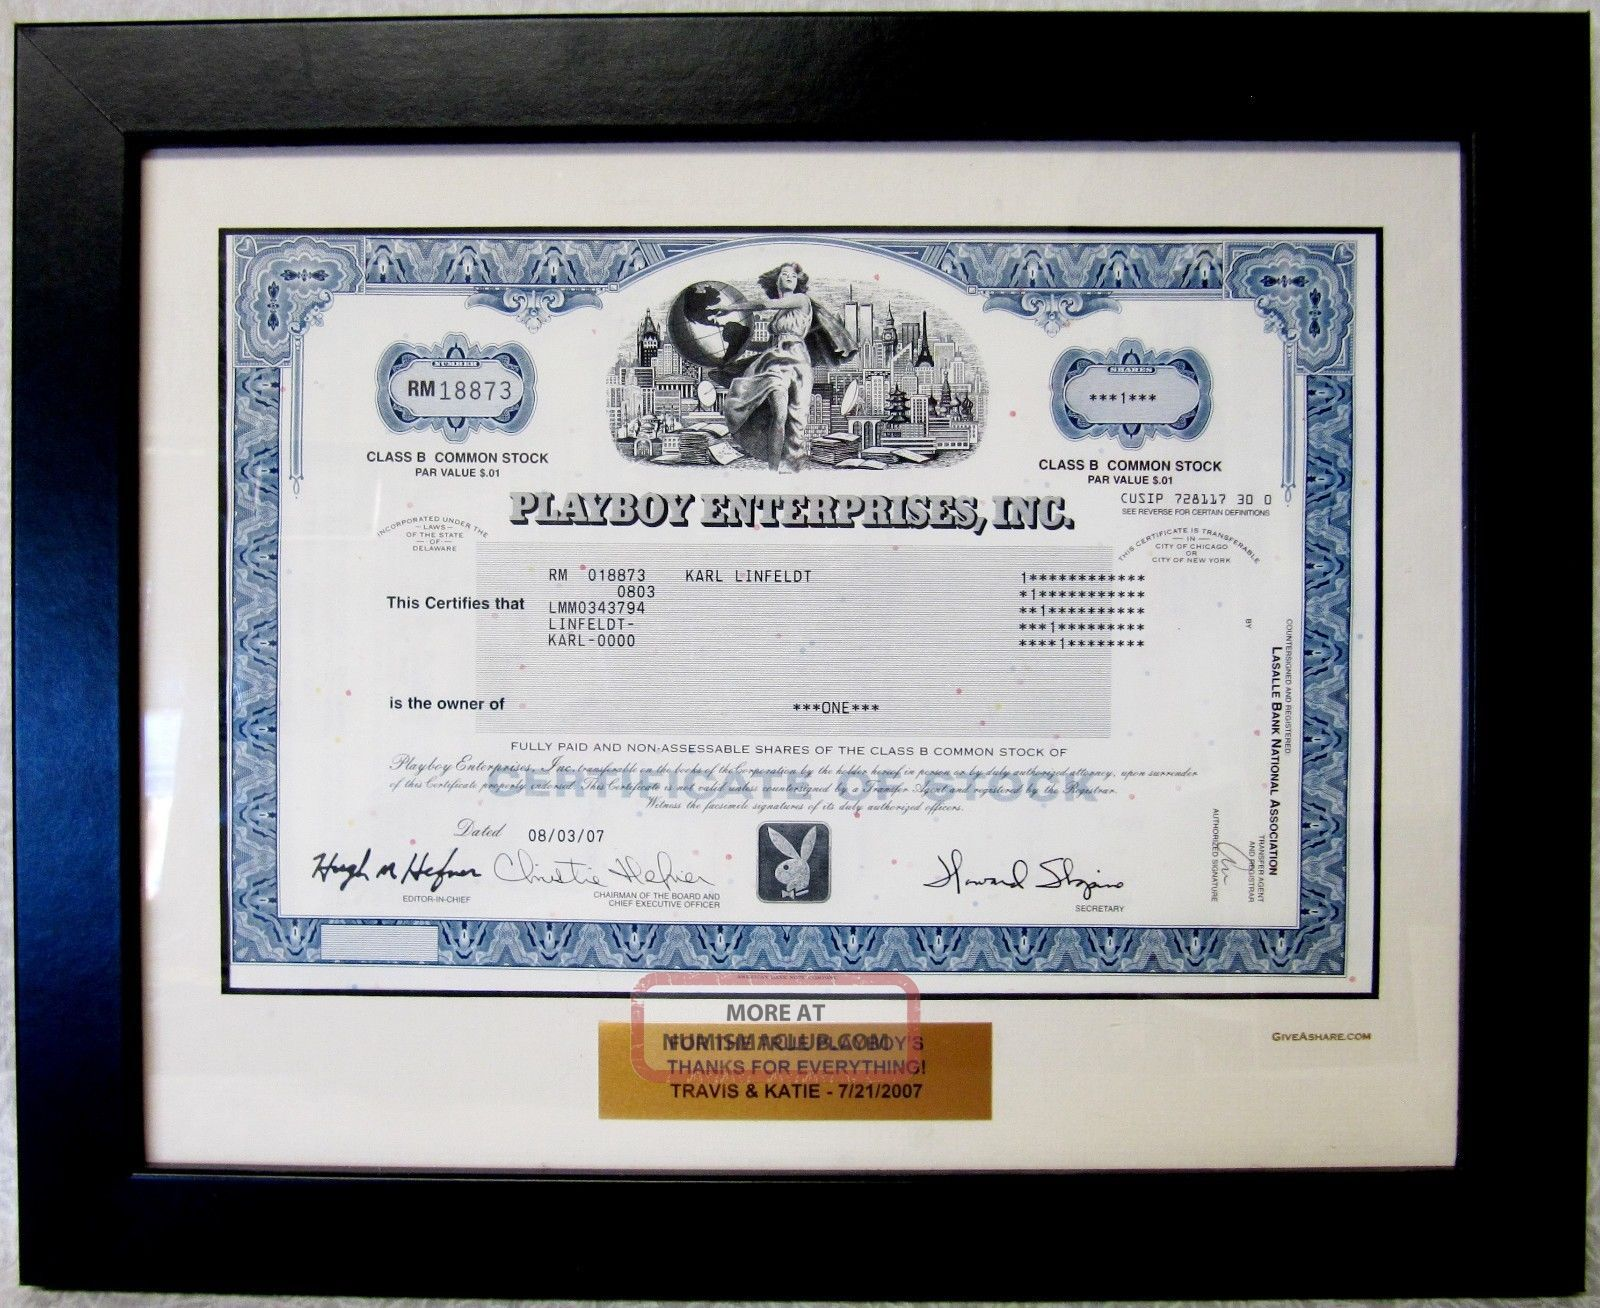 Framed & Dedicated Playboy Enterprises Inc Common Stock Certificate 2007 Stocks & Bonds, Scripophily photo